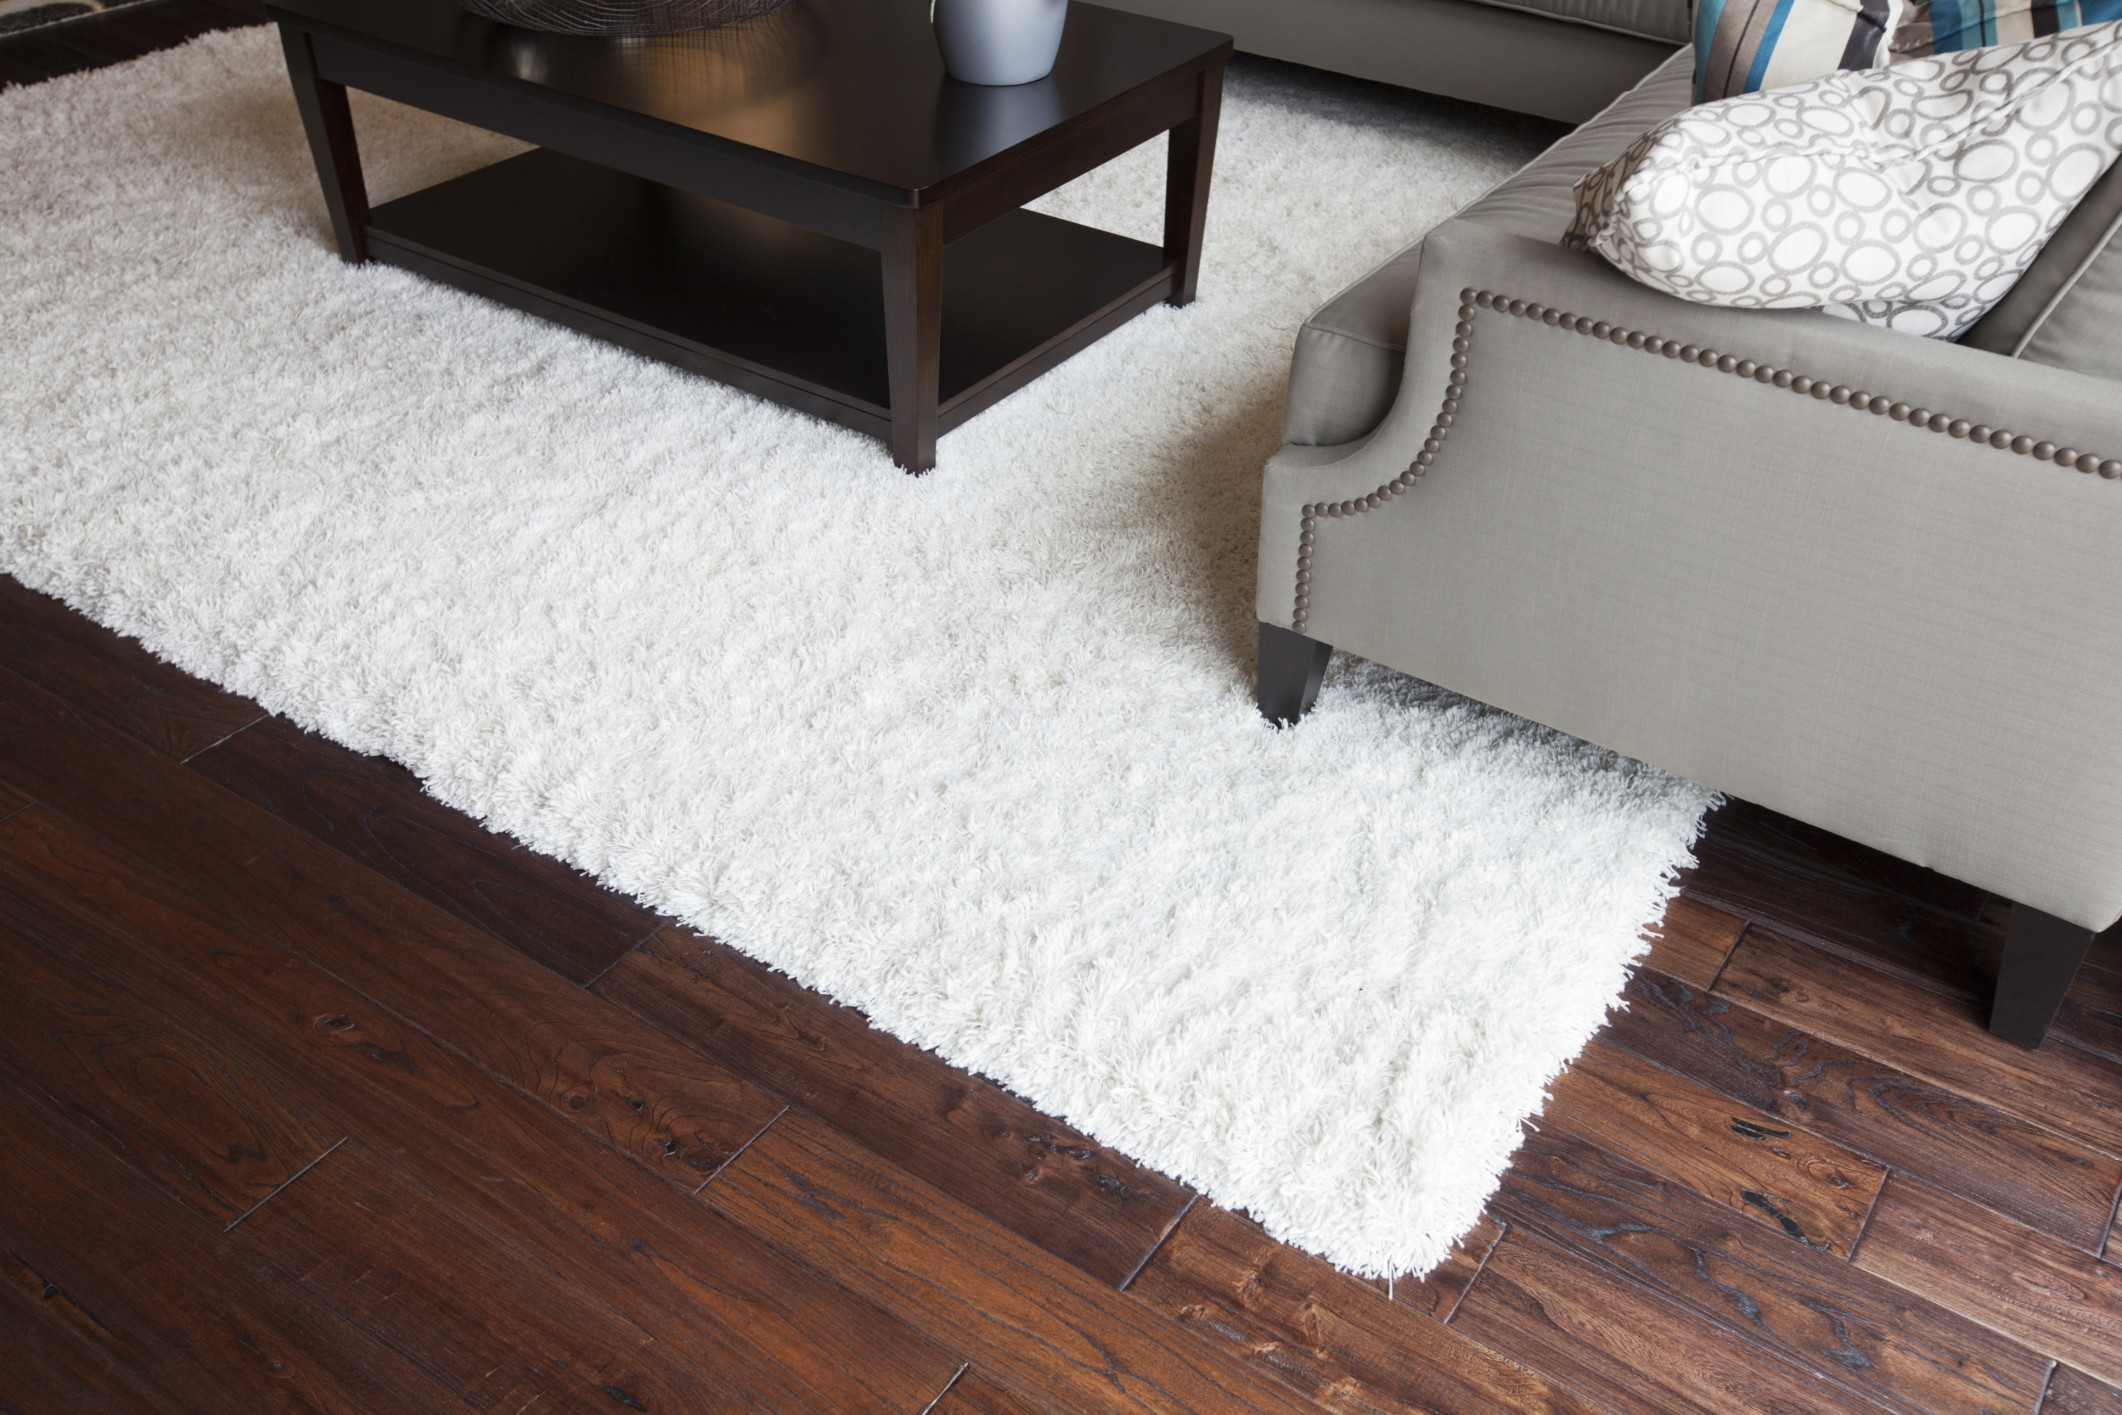 Permalink to Area Rugs On New Wood Floors